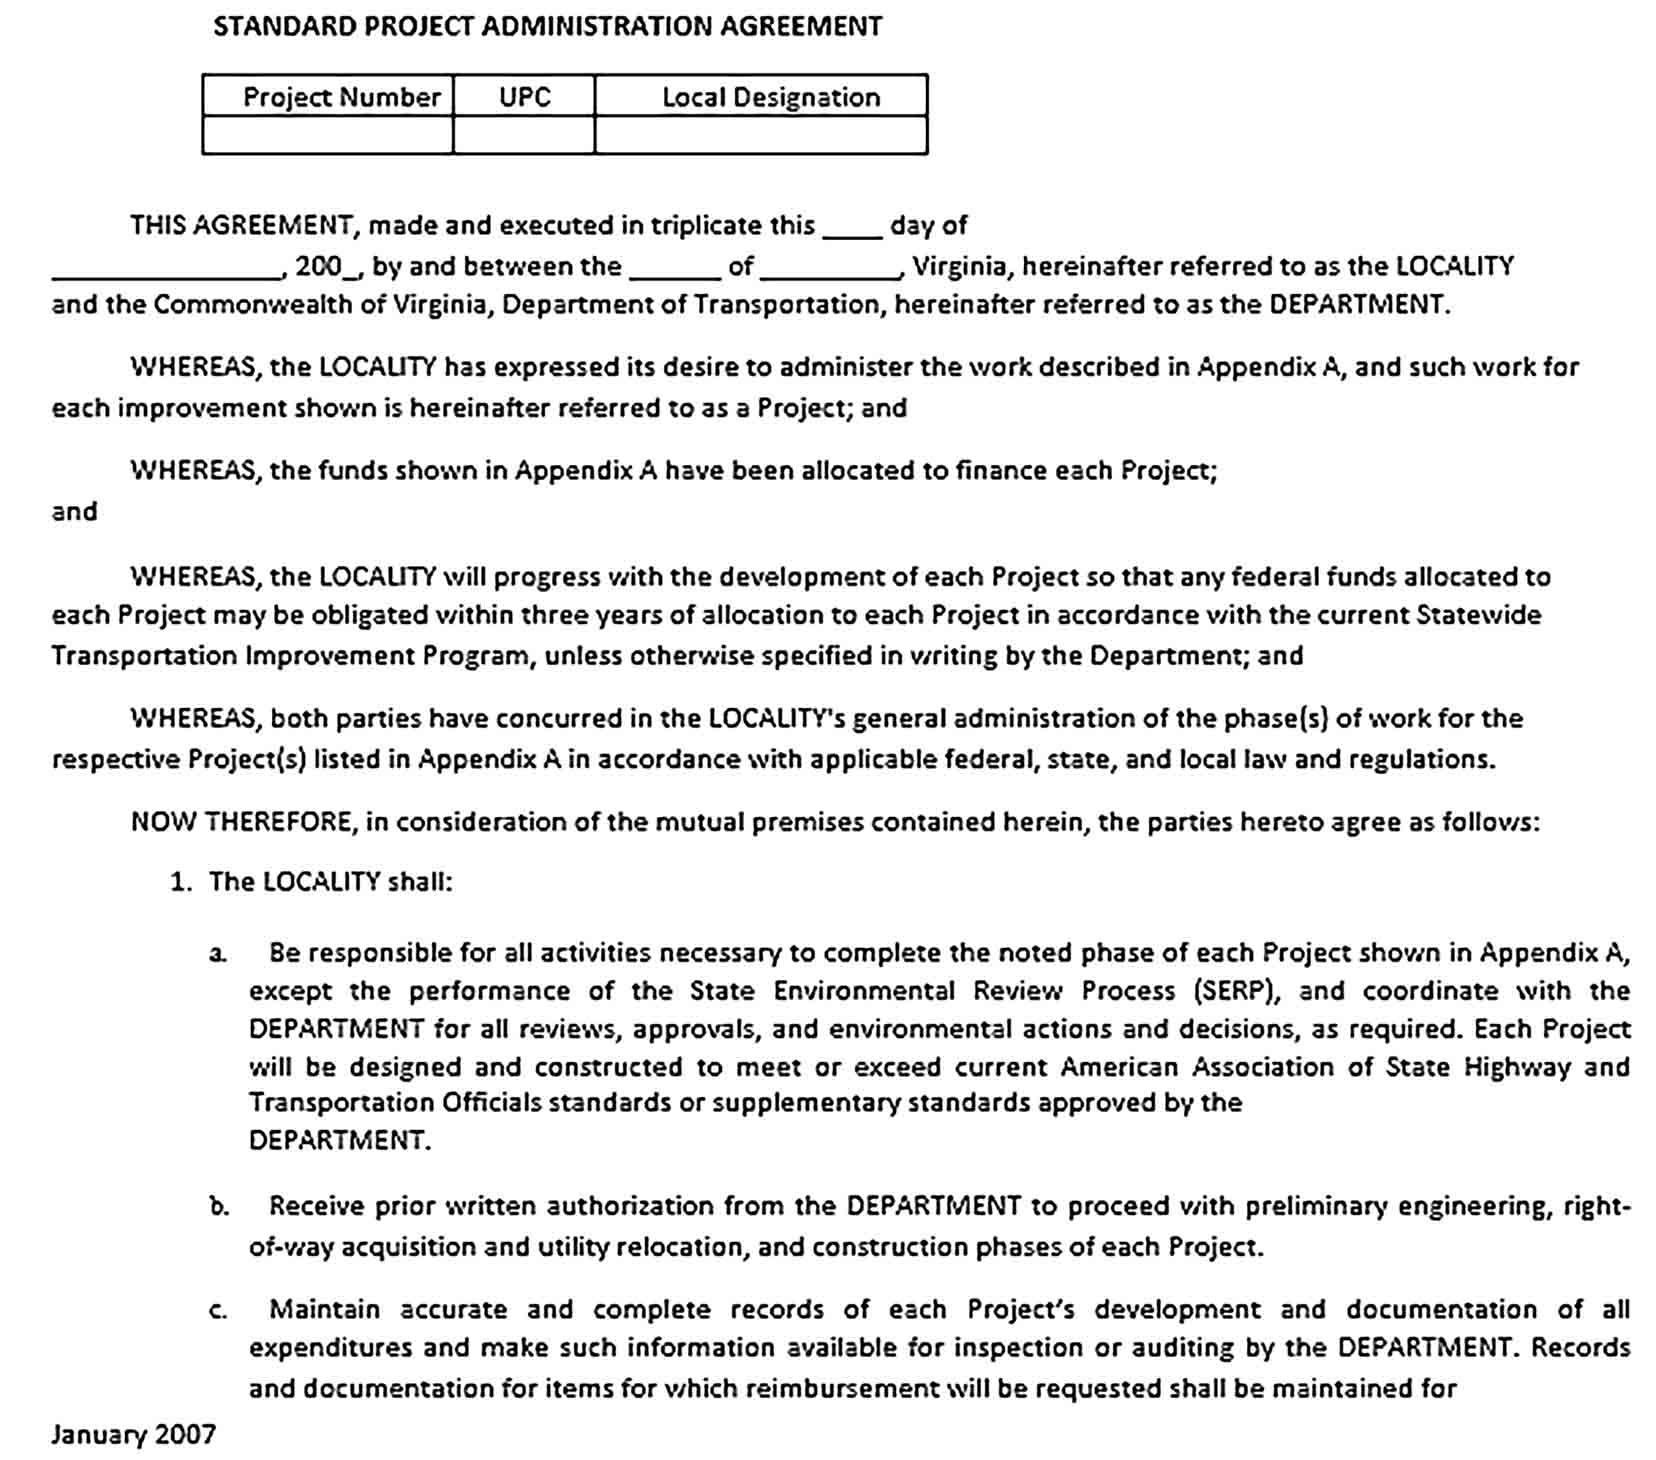 Sample Standard Project Administration Agreement